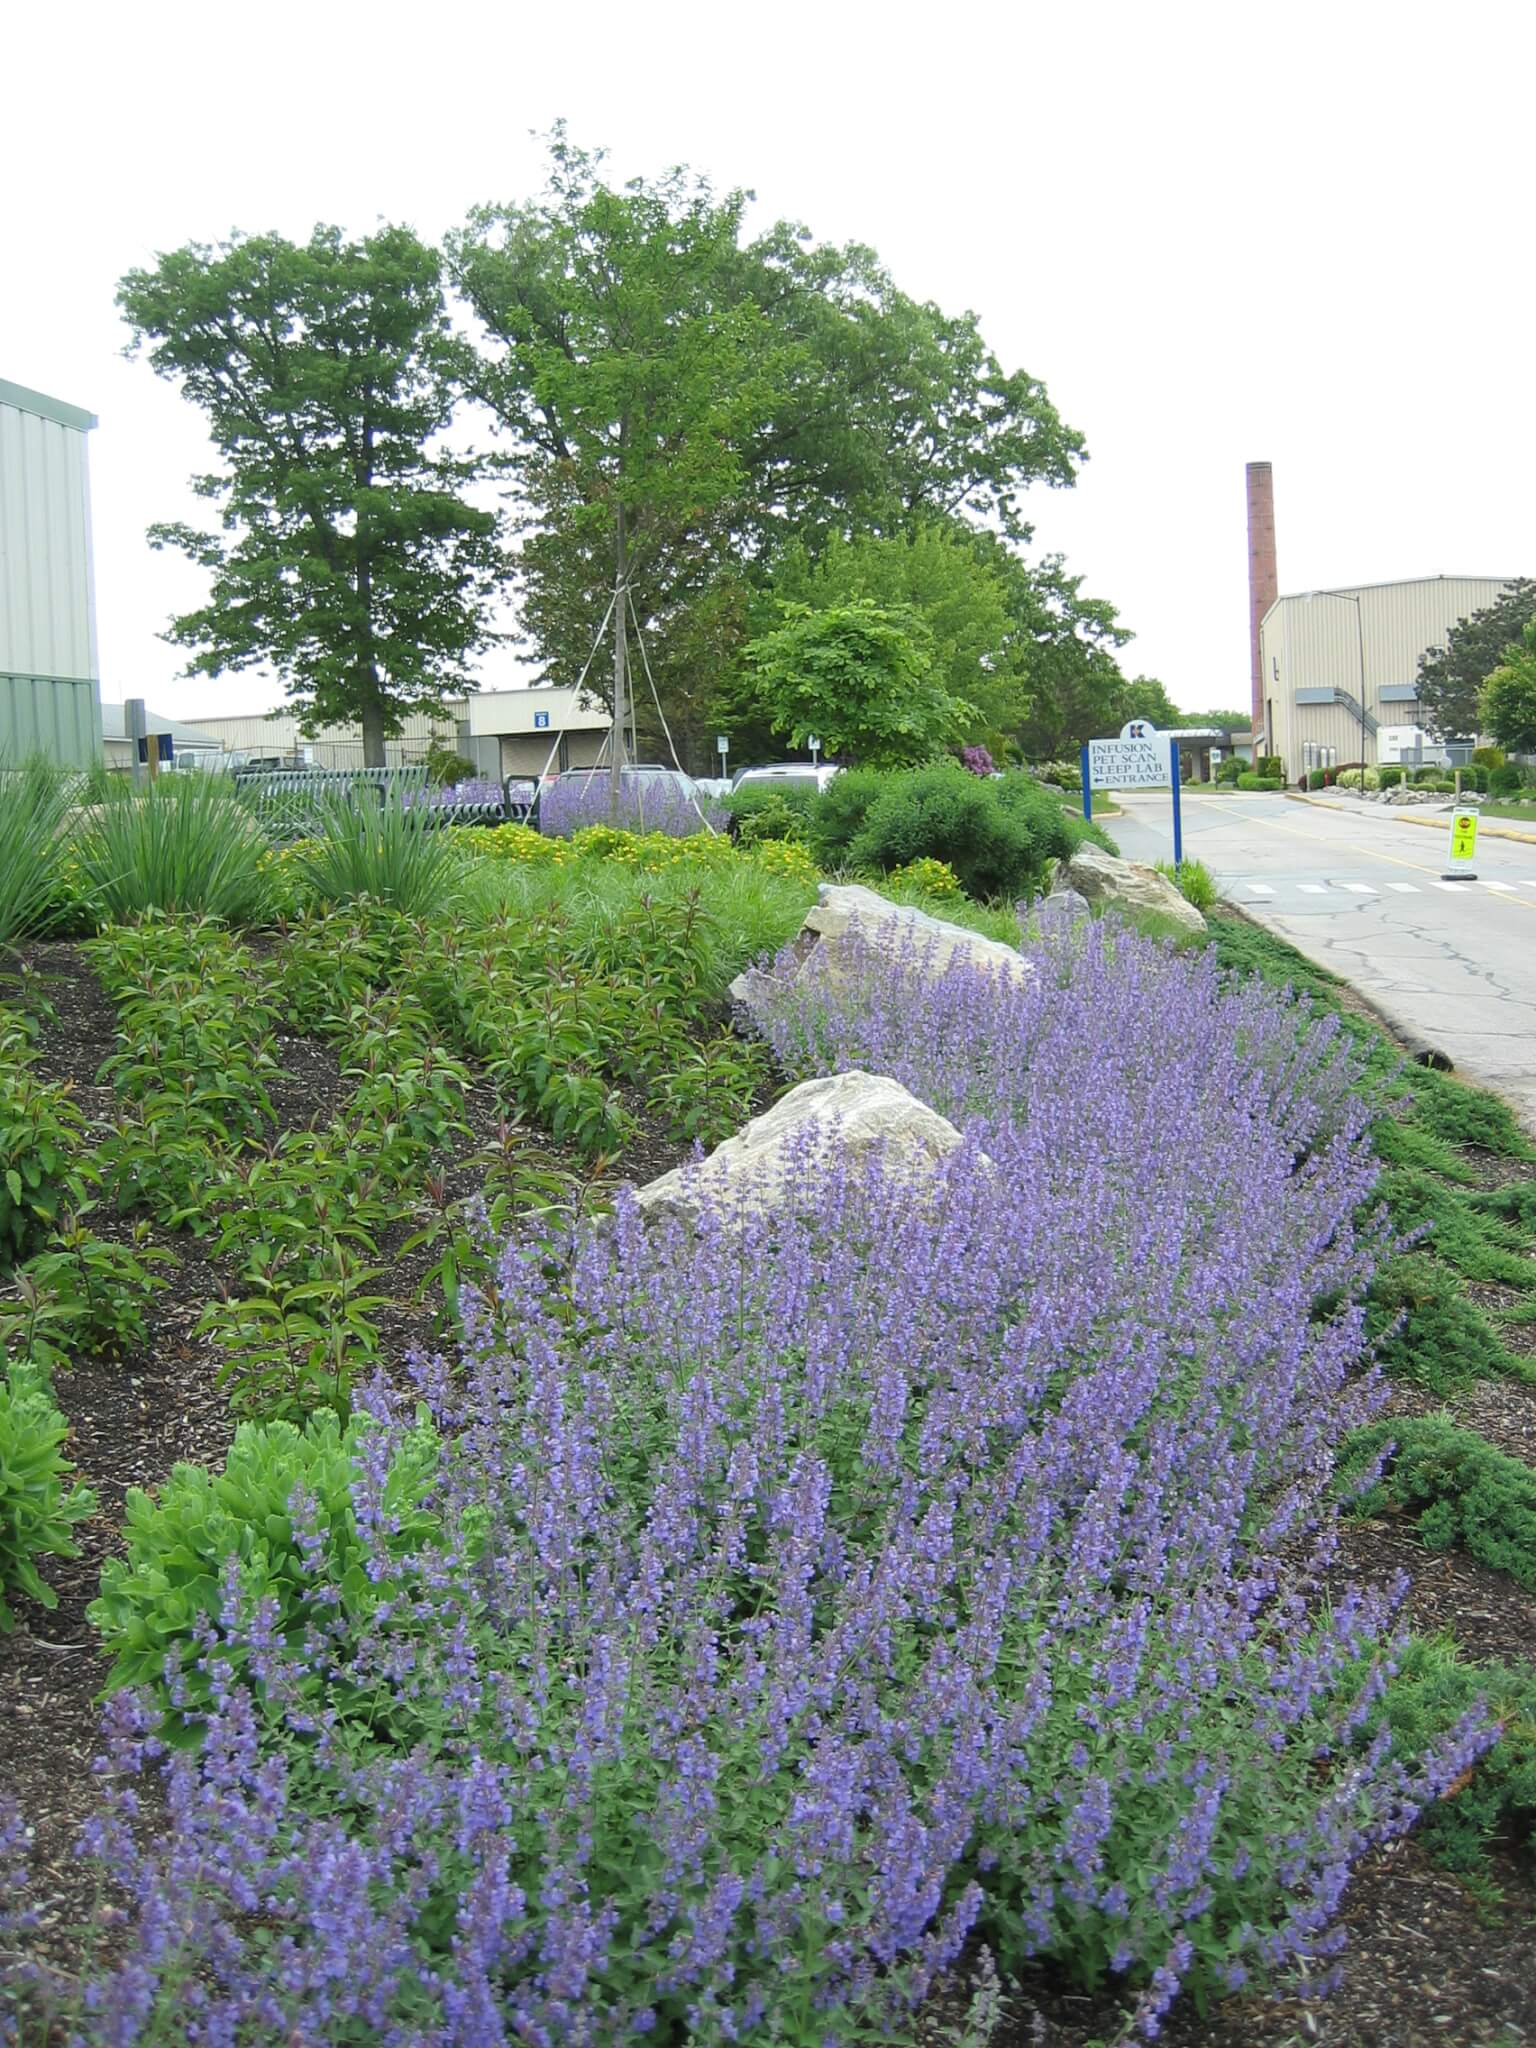 Creeping flowers stabilize and enliven embankment leading up to healing Serenity Garden.